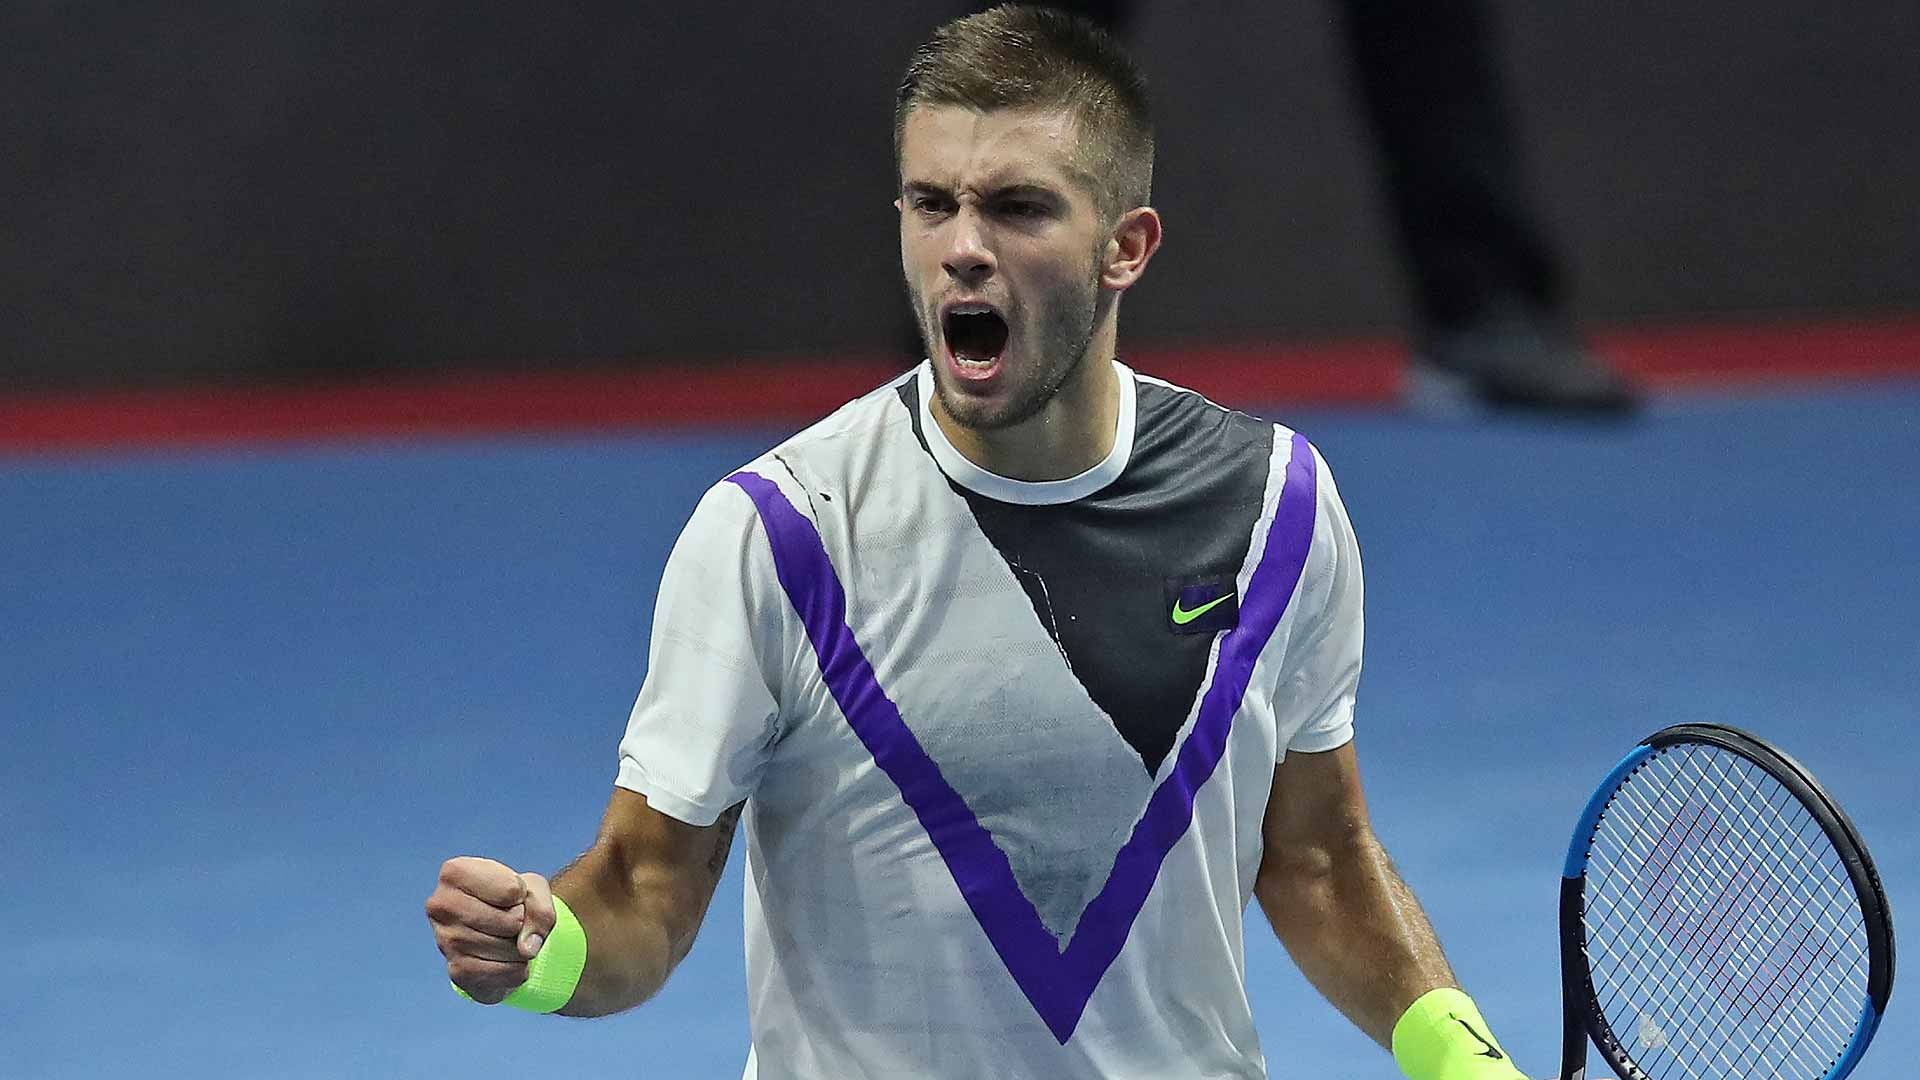 Borna Coric has jumpstarted his season this week at the St. Petersburg Open.